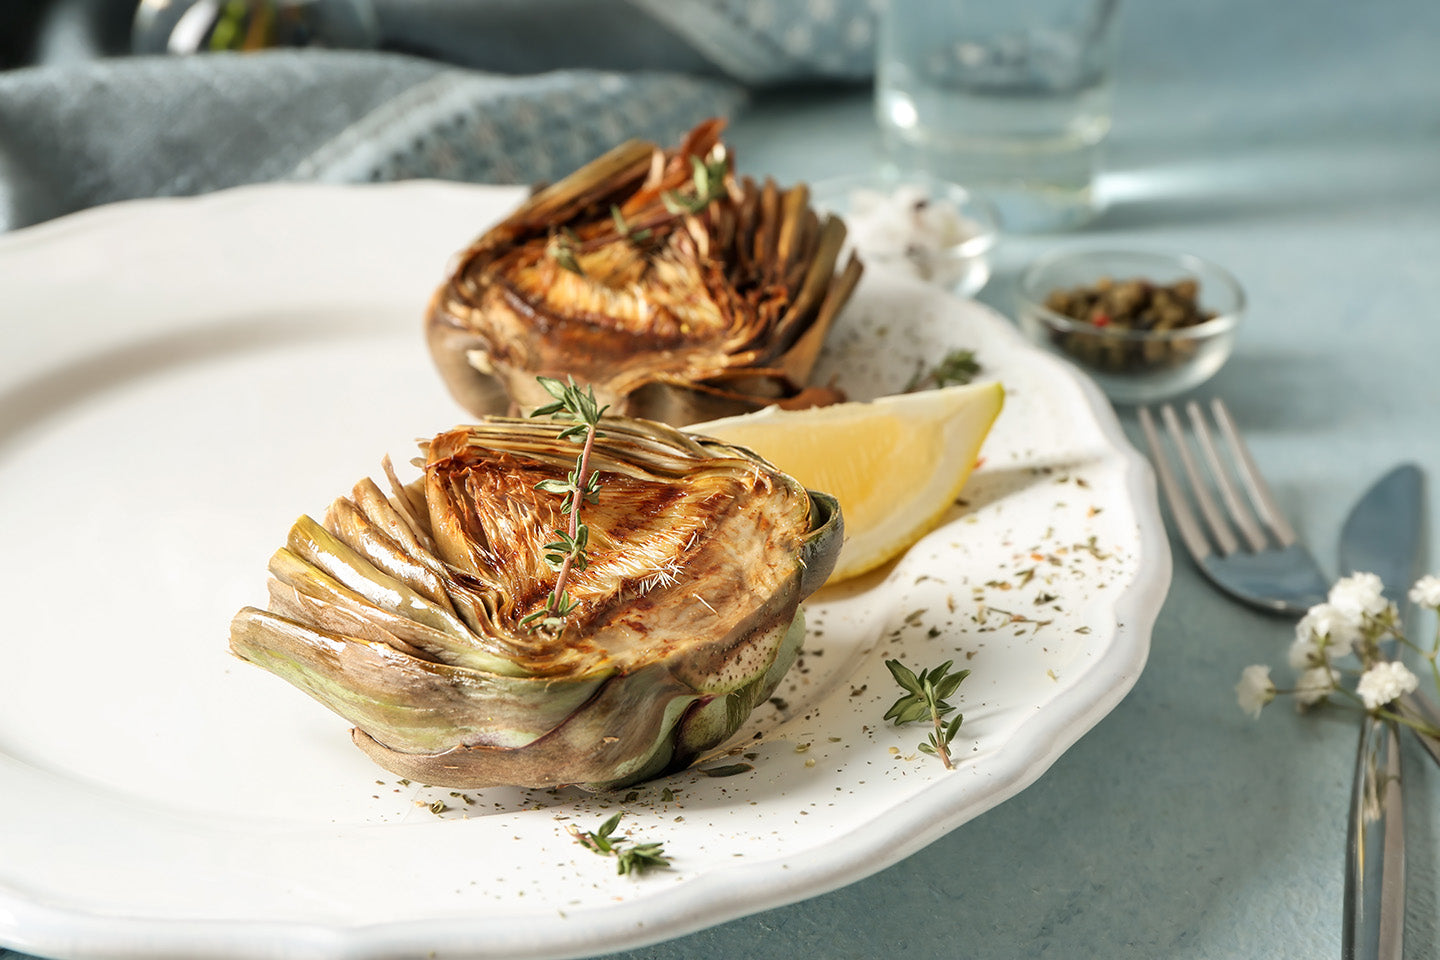 NOLA Blends Grilled Artichoke with Balsamic Mustard Sauce